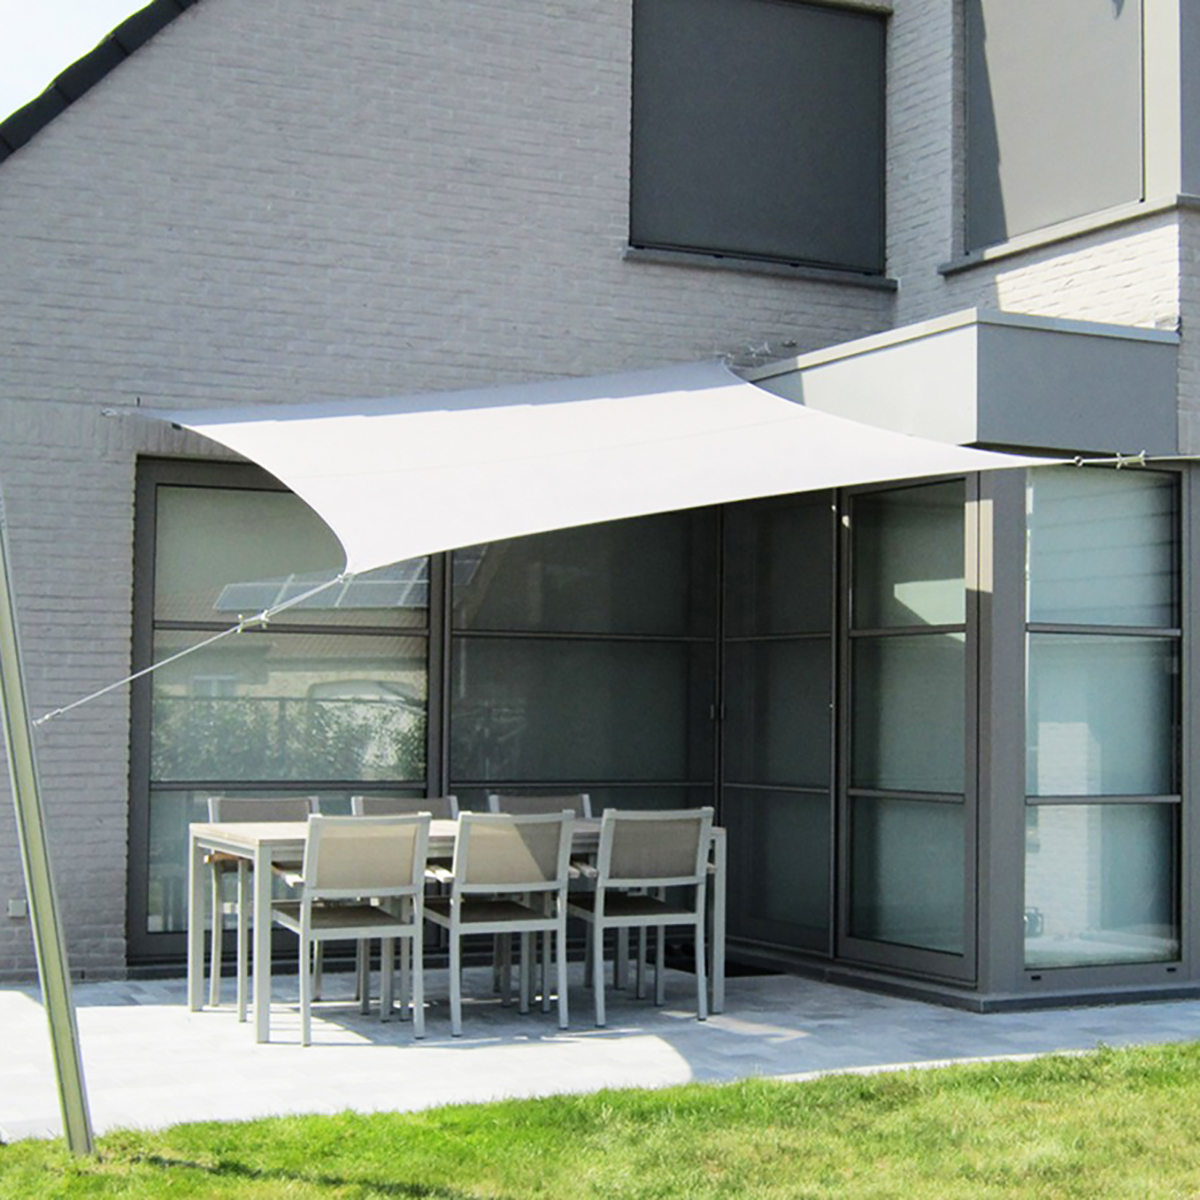 Waterproof Sun Shade Sunscreen Sail UV-resistant Awning Canopy Cover Outdoor Garden Patio 3x3m/3.6x3.6m Square